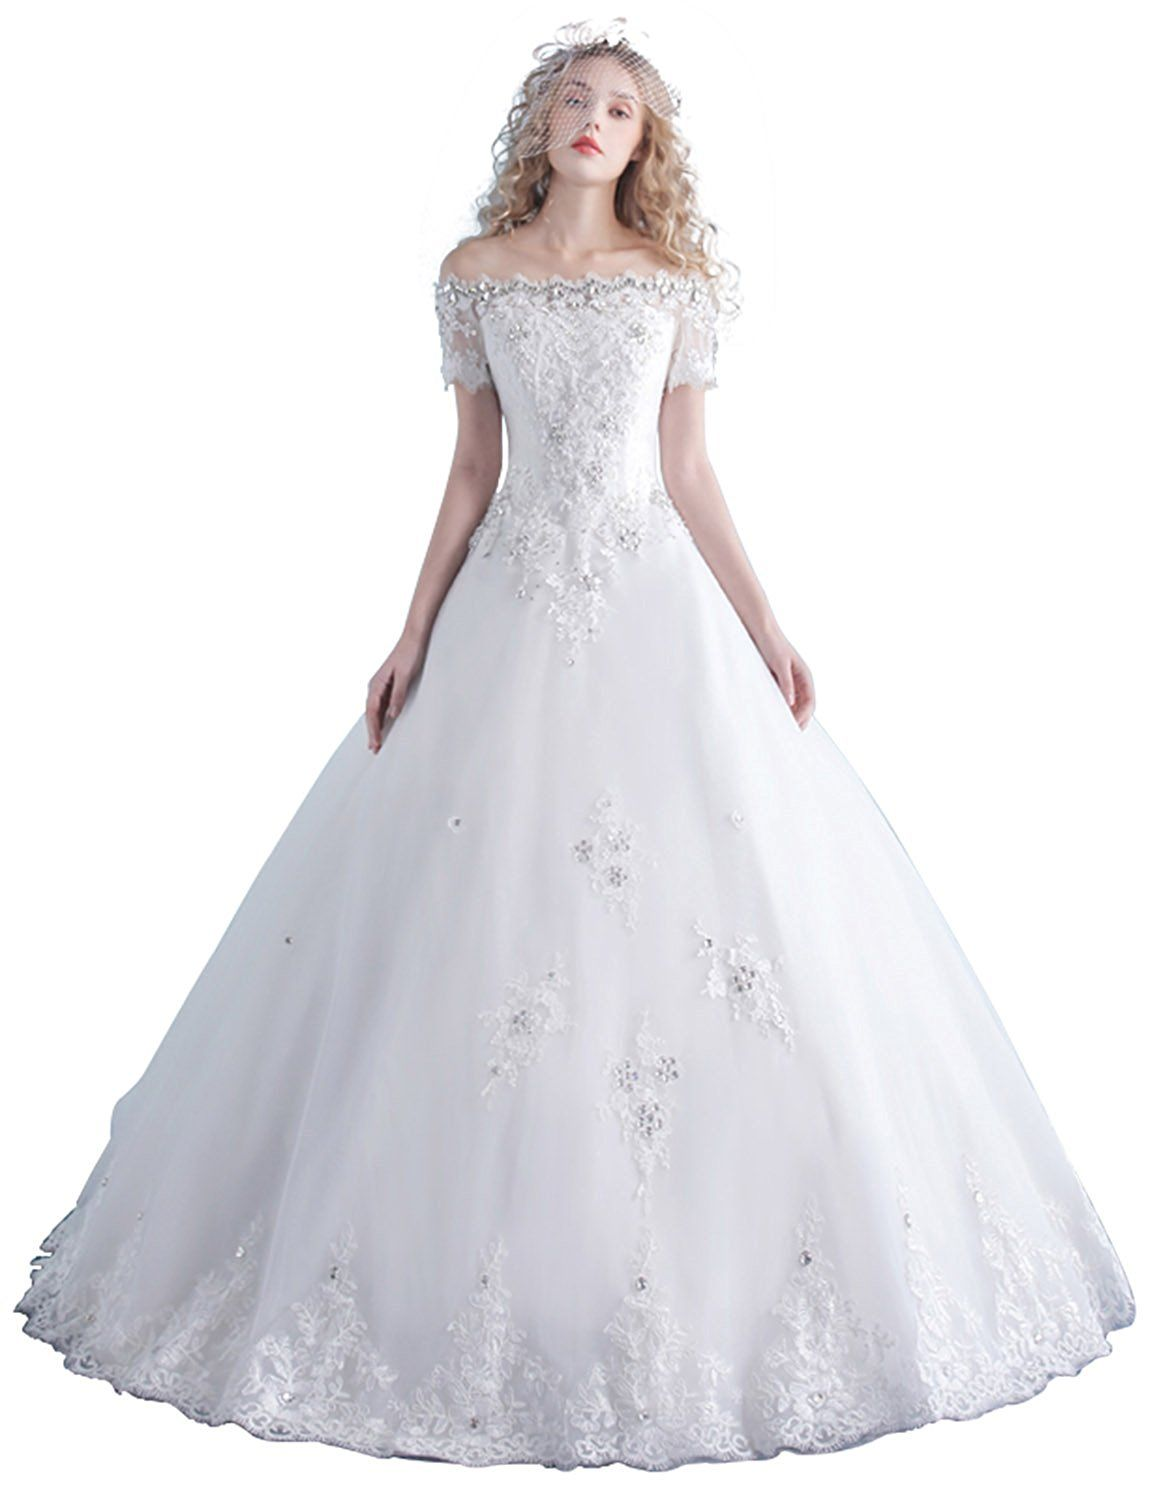 Aimo womenus long rhinestones bateau short sleeves wedding dresses